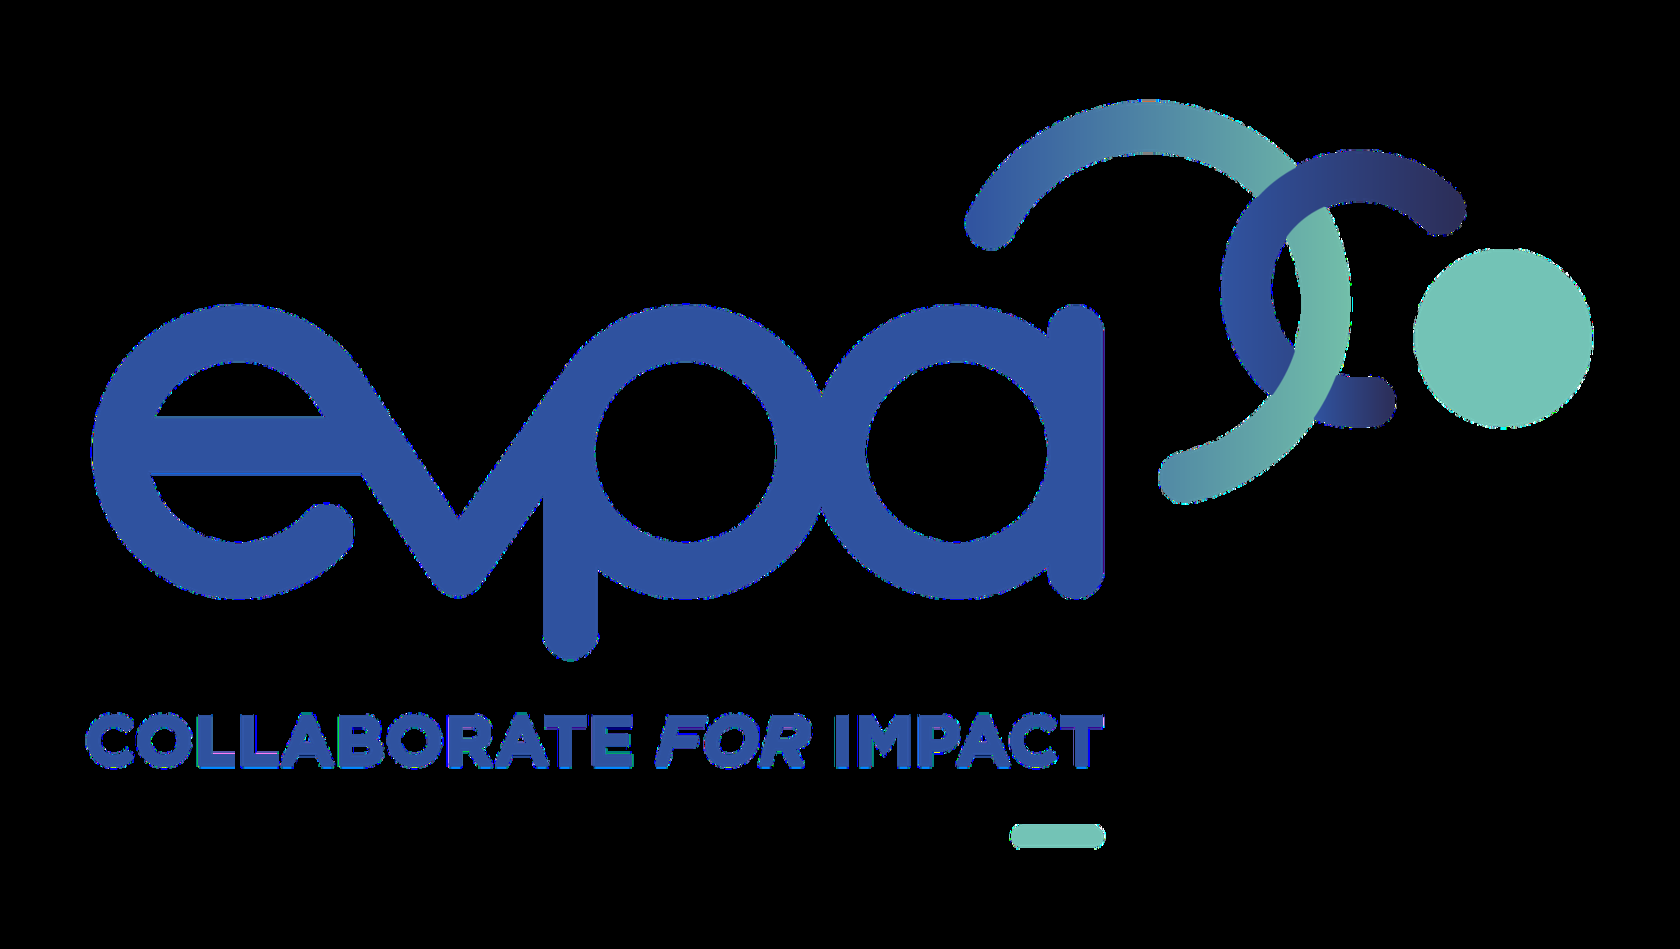 Collaborate for Impact